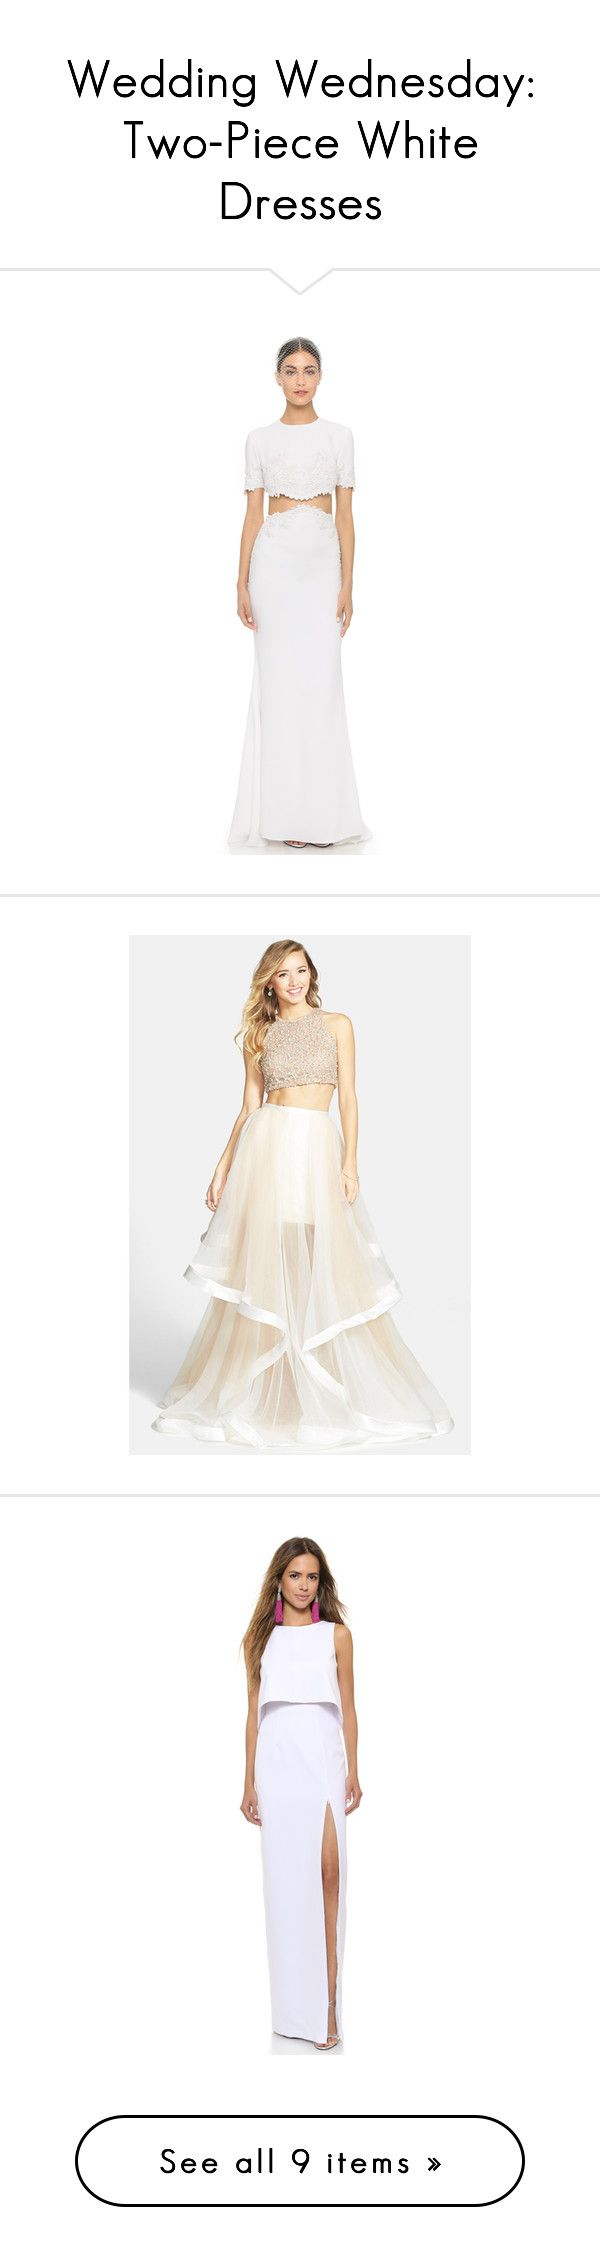 """""""Wedding Wednesday: Two-Piece White Dresses"""" by polyvore-editorial ❤ liked on Polyvore featuring TwopieceDress, weddingwednesday, dresses, gowns, white, white dress, 2 piece dress, white ball gowns, two piece evening dresses and white embroidered dress"""